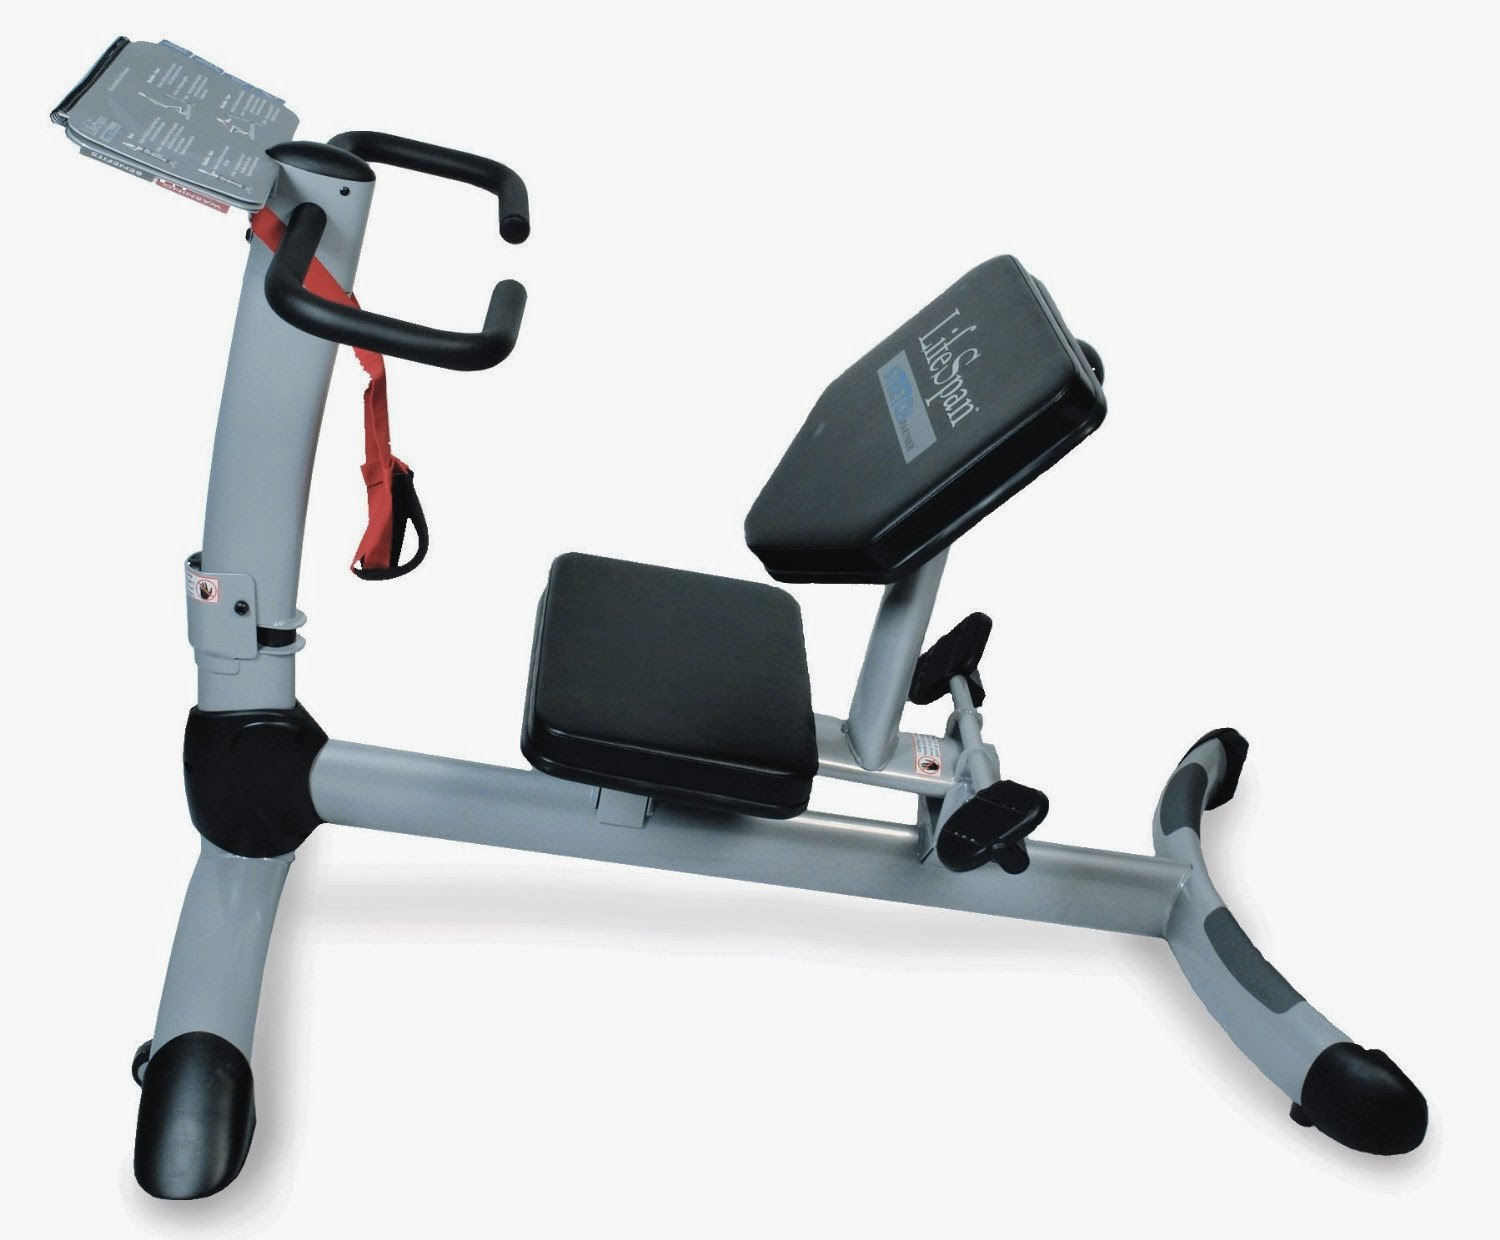 LifeSpan Fitness SP1000 Stretch Partner Stretching Machine, comparison review with LifeSpan Fitness SP1000 Stretch Partner Stretching Machine